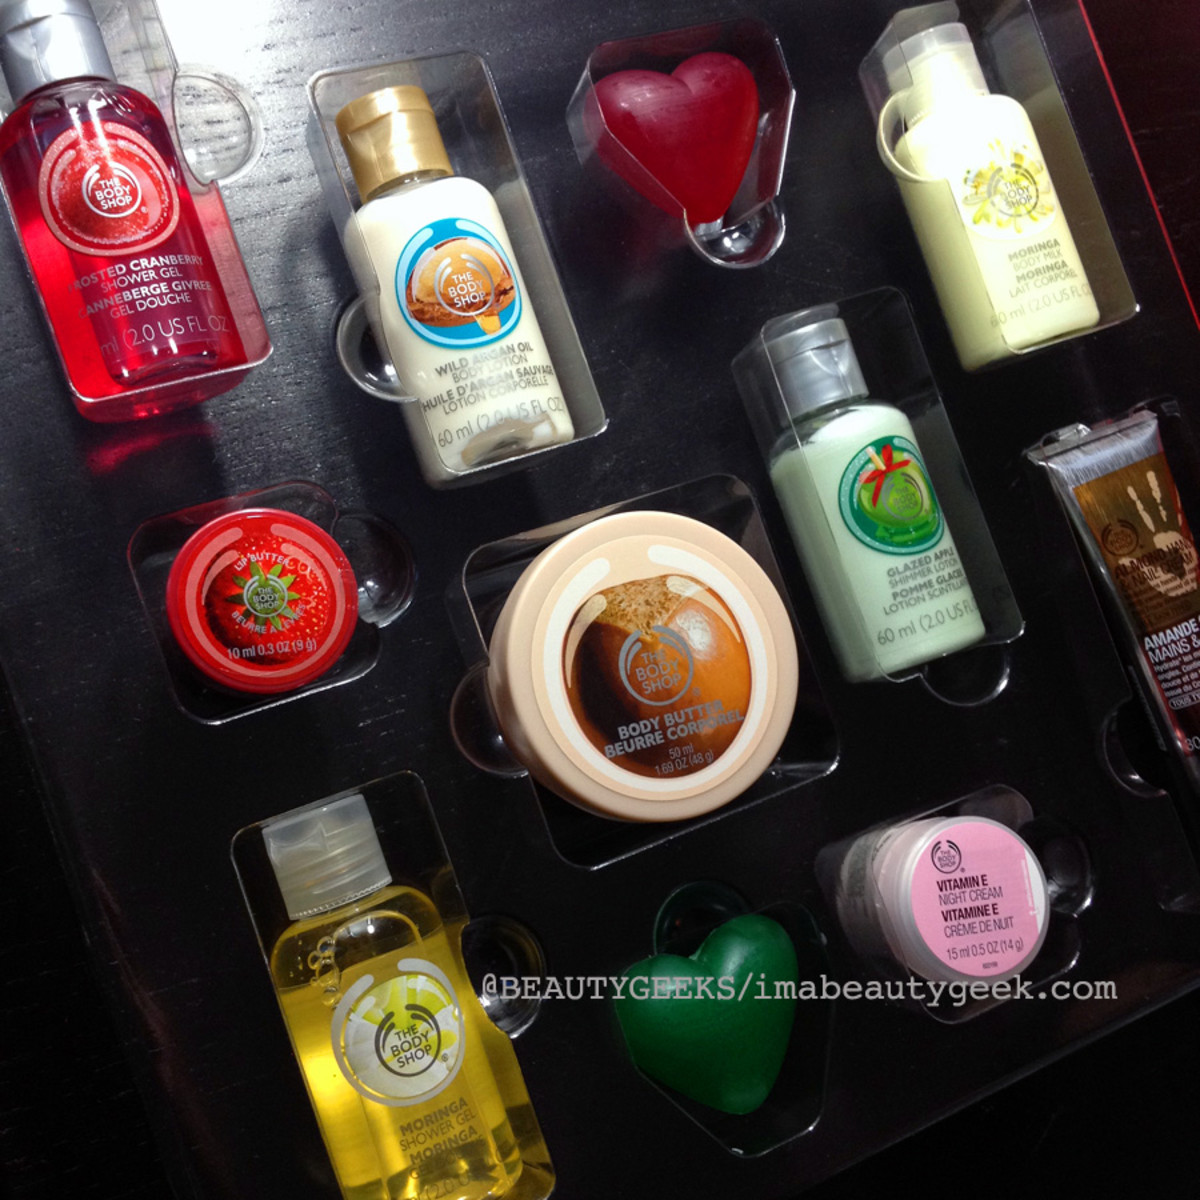 advent calendars 2014_The Body Shop advent calendar 2014 interior 2